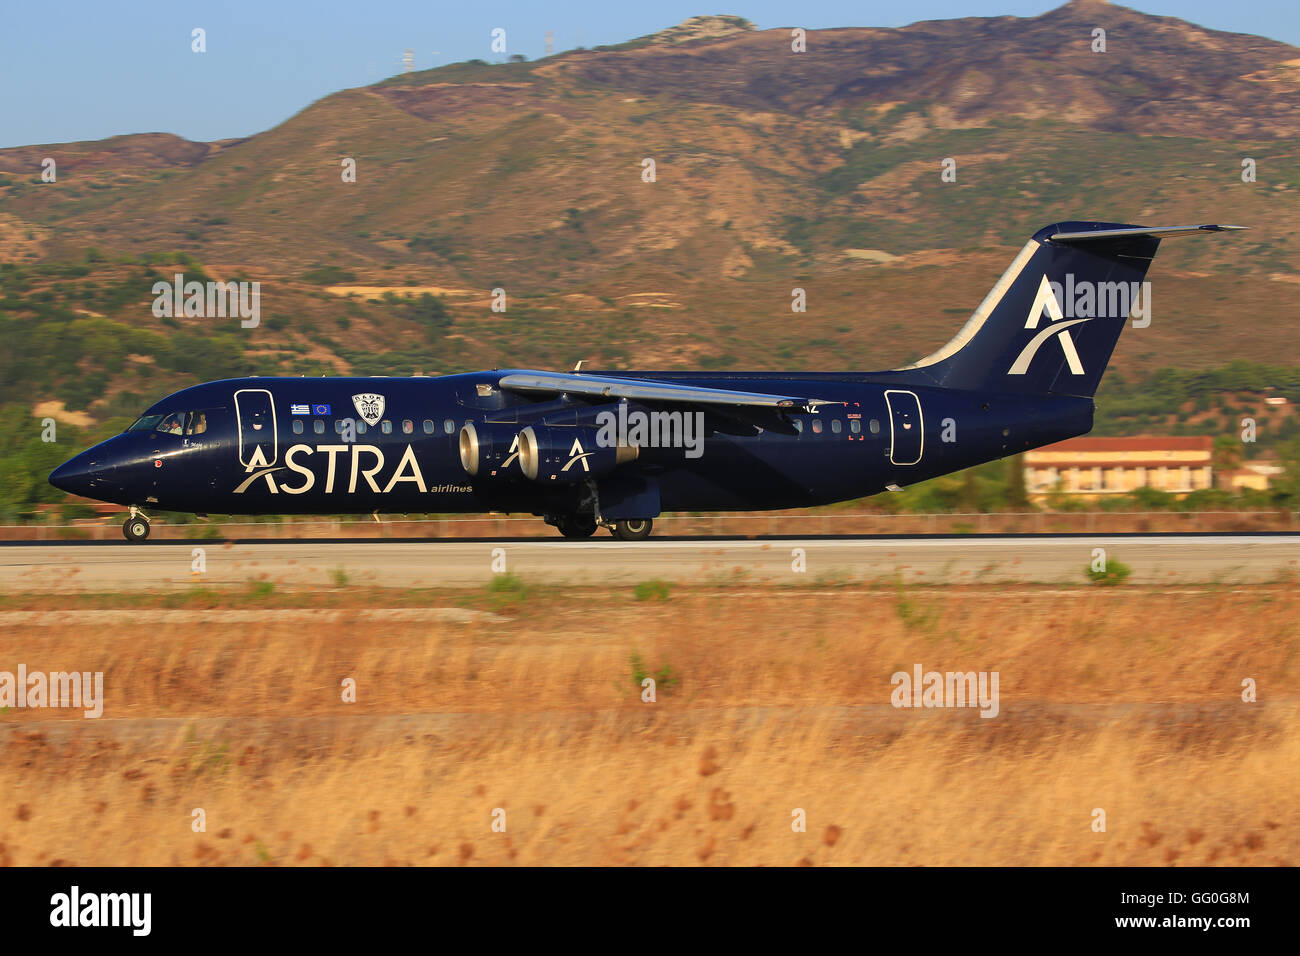 Zakynthos/Greece Februar 15, 2012: Avro Bae 146 from ASTRA Airliners at Zakynthos Airport. - Stock Image